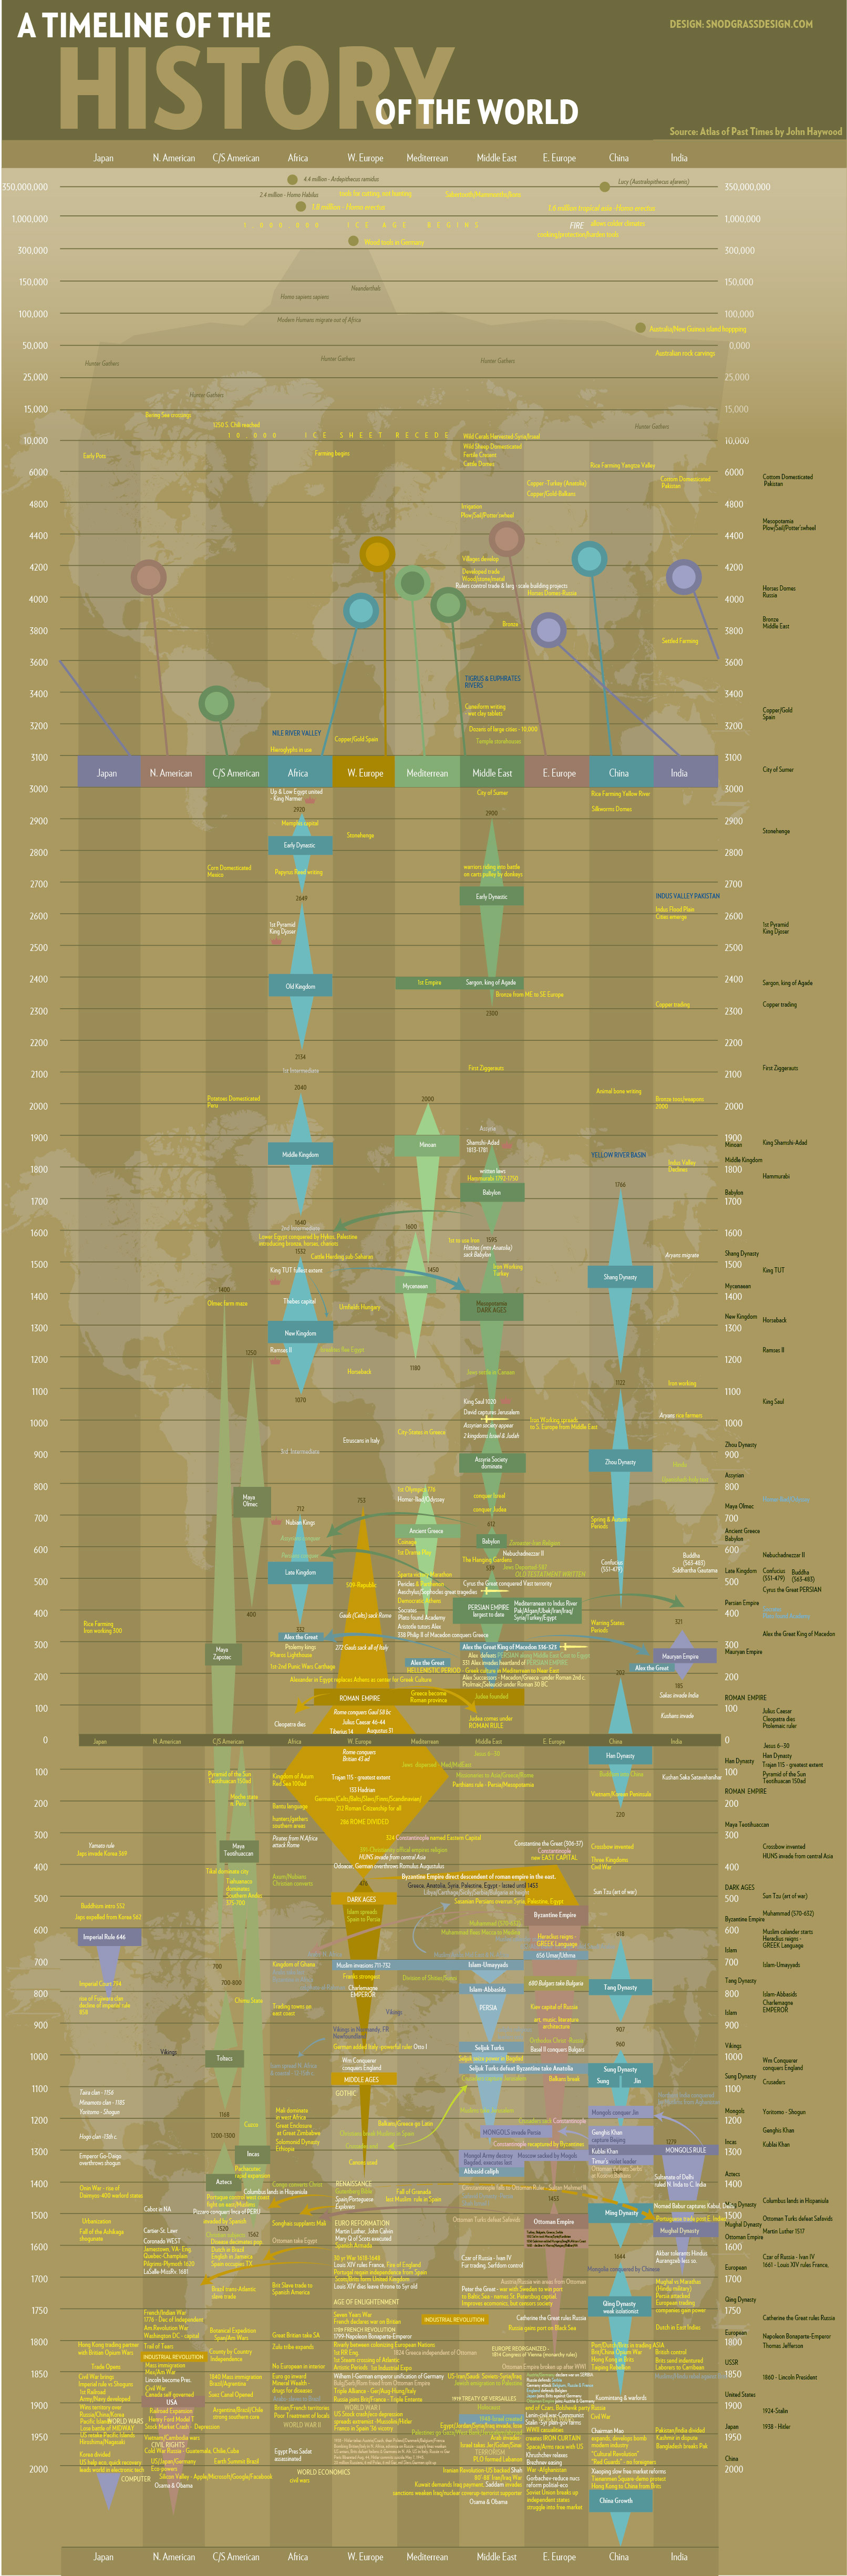 timeline-history-world-snodgrass